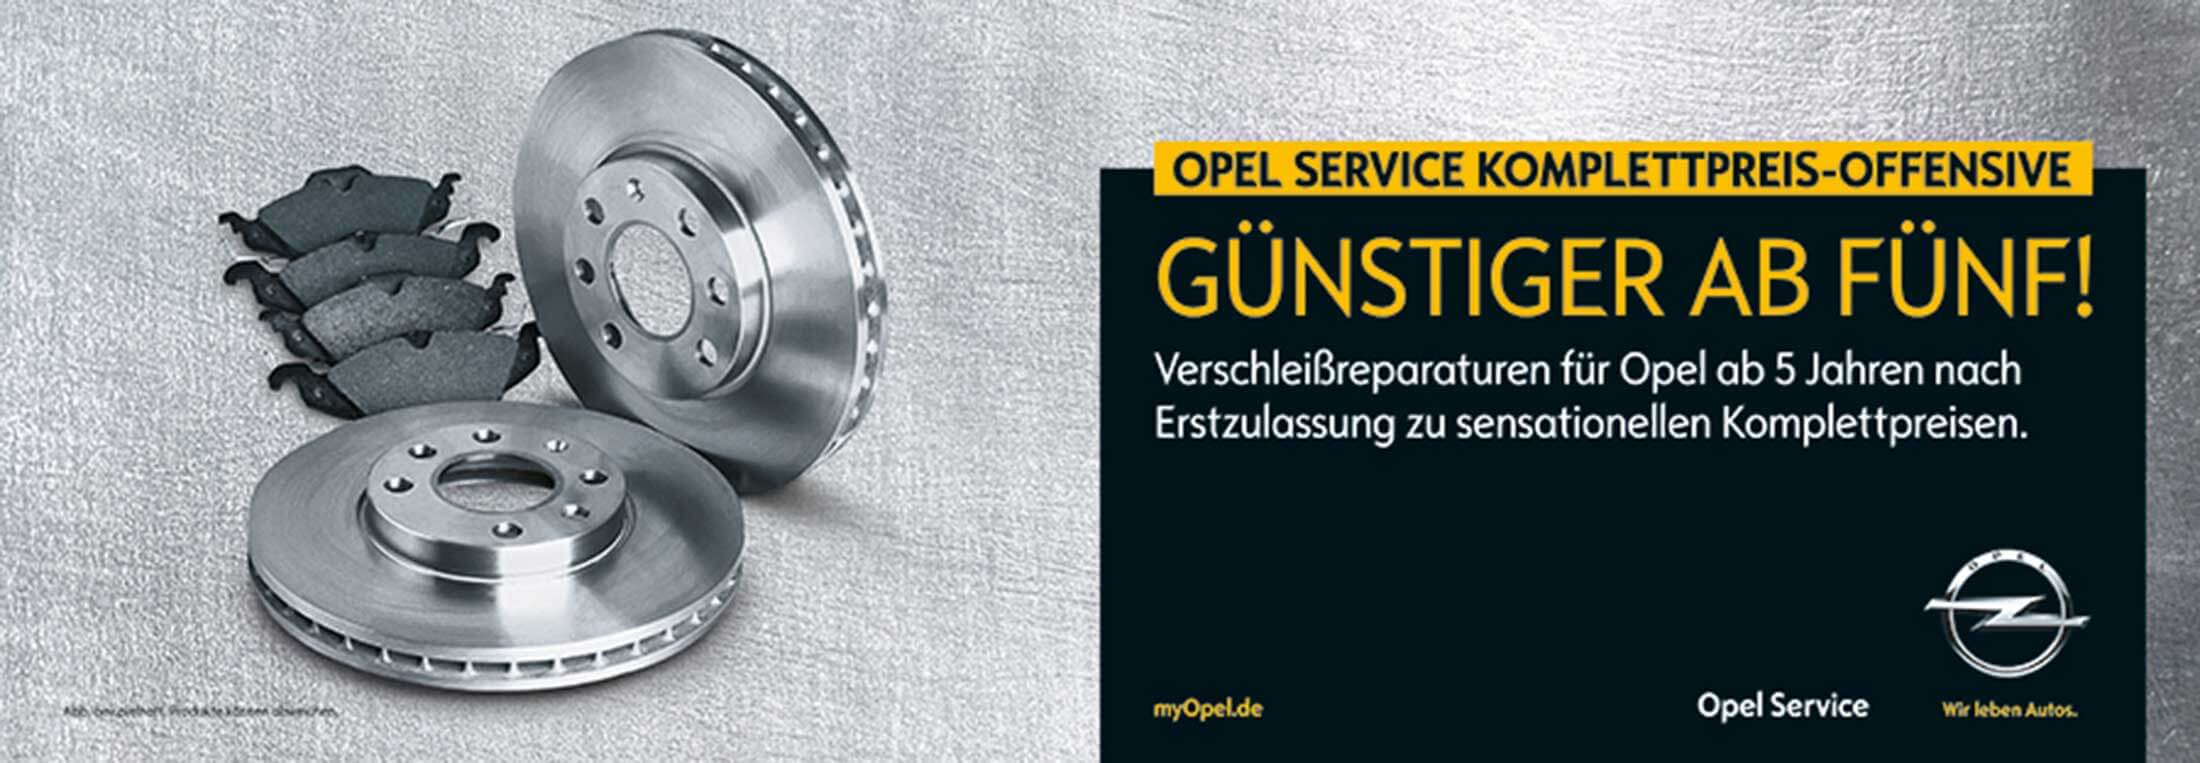 Otto Cars | Opel Service Komplettpreis-Offensive